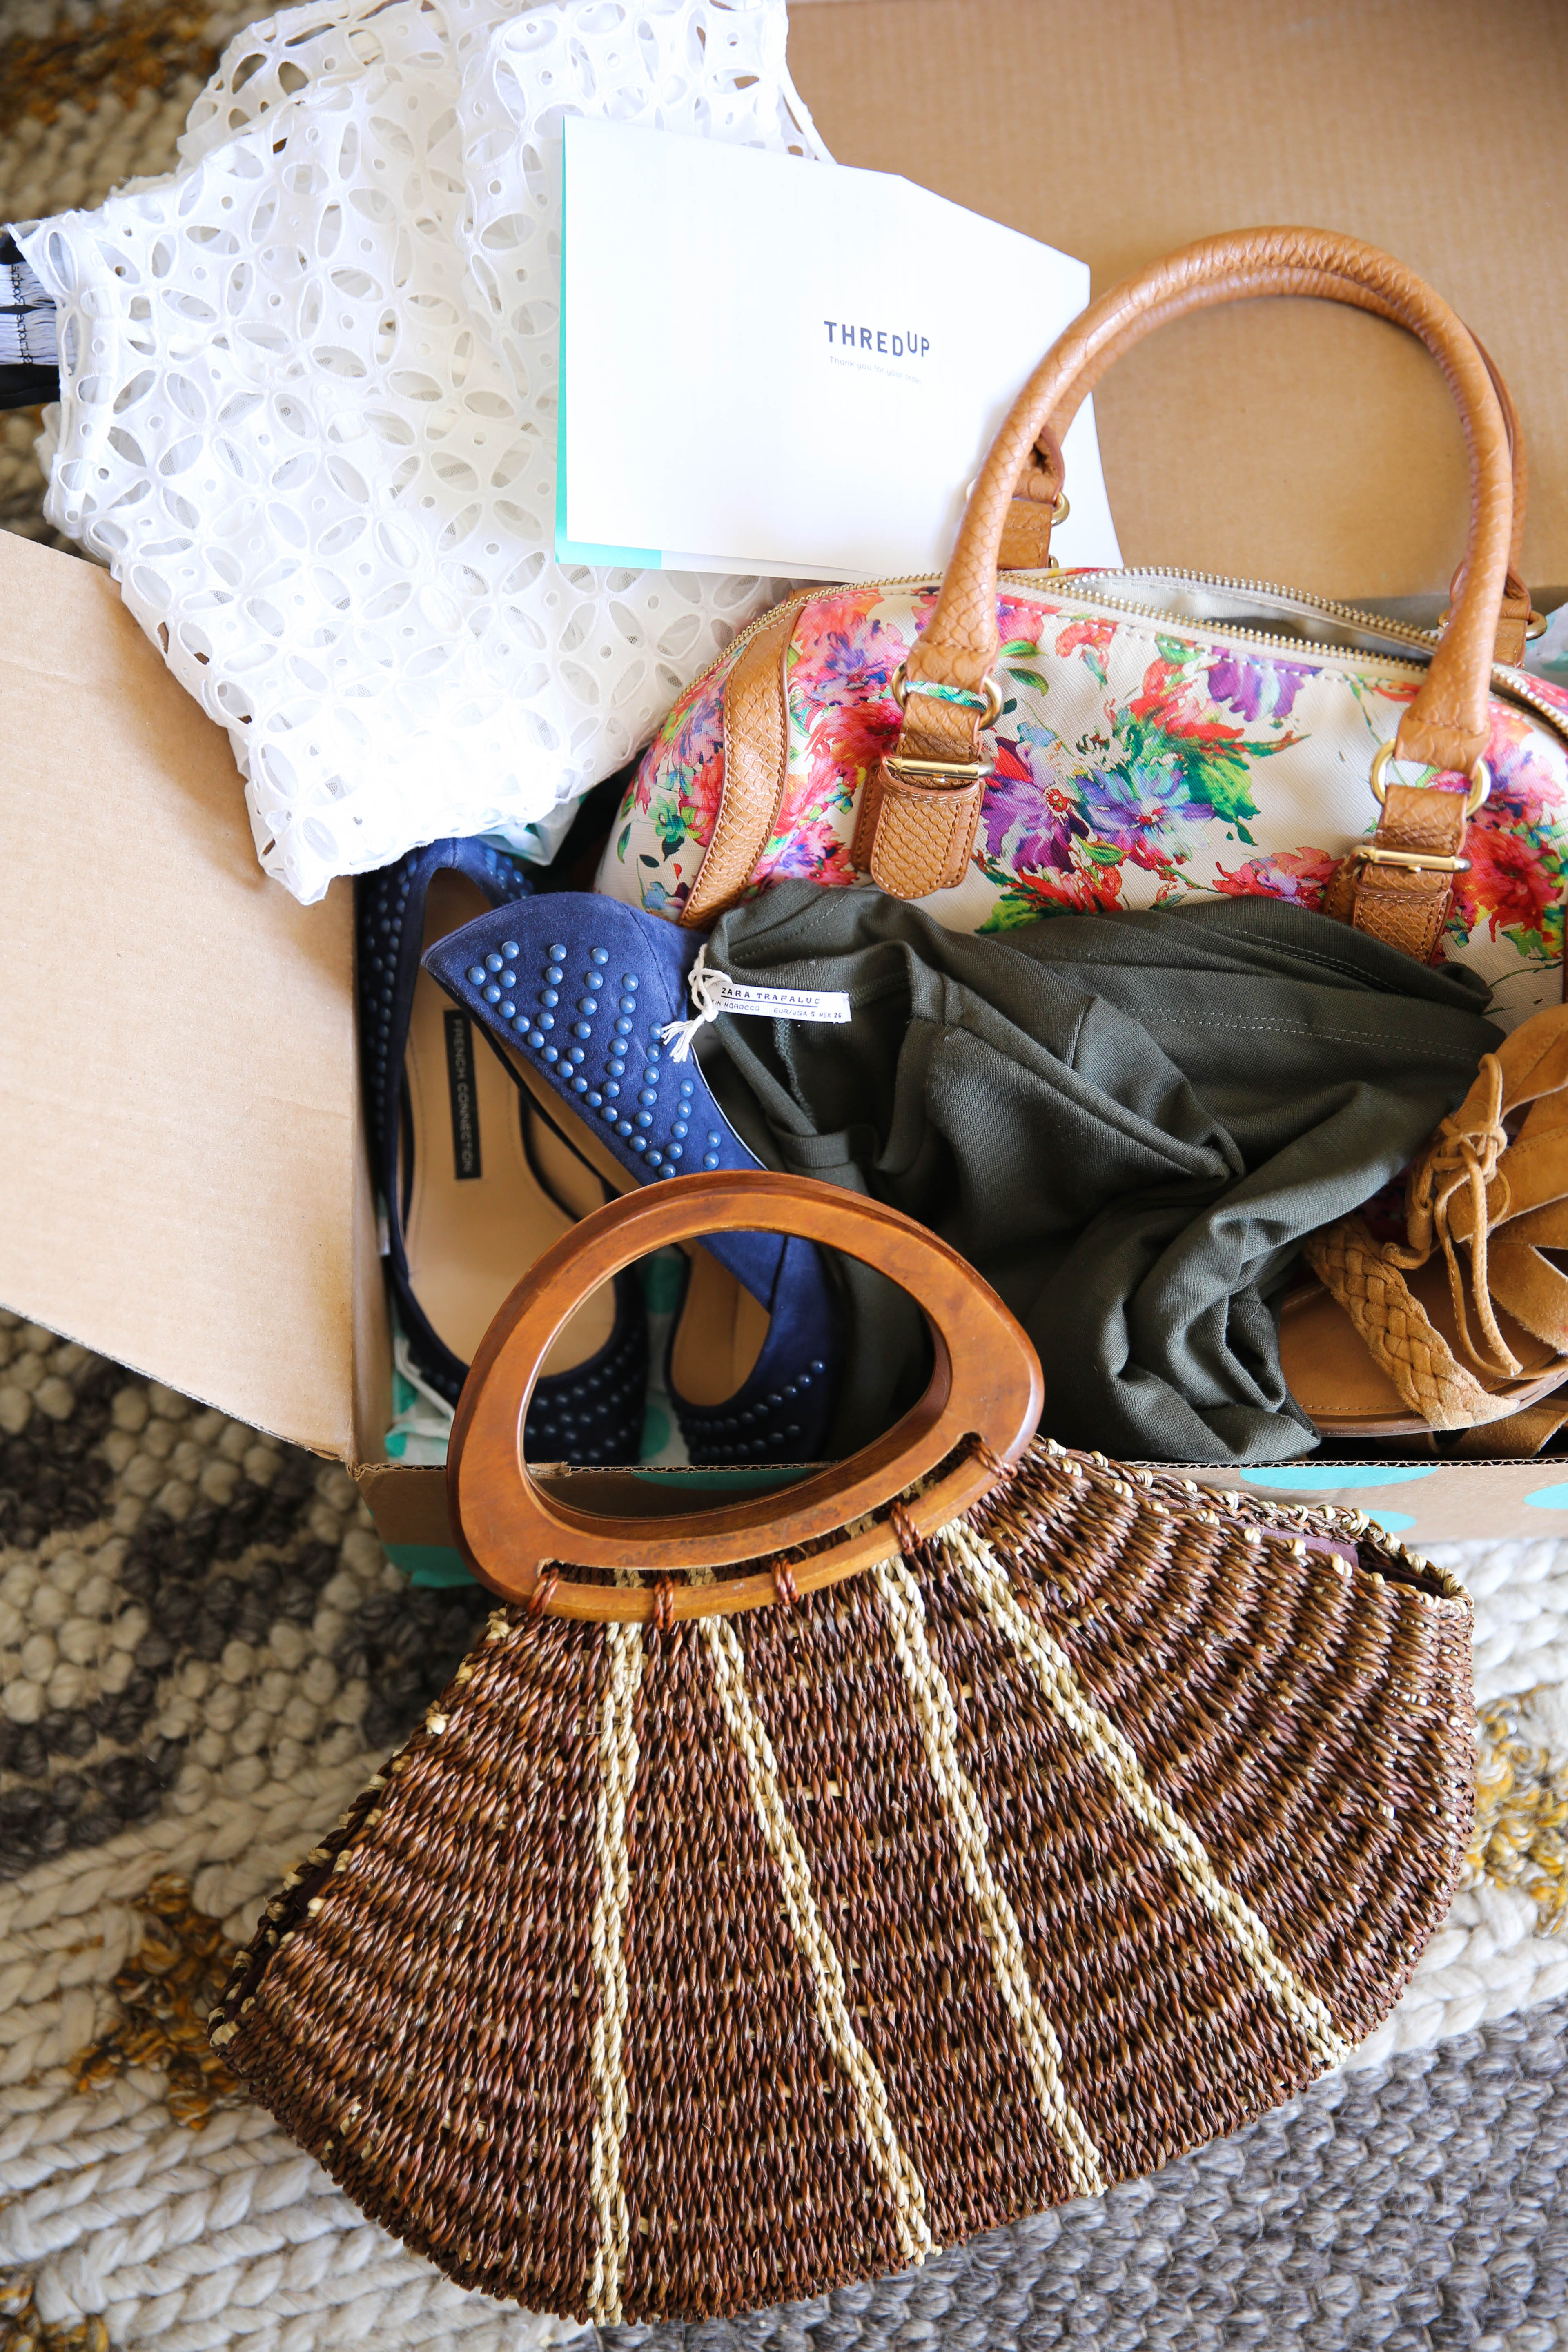 Refreshing Your Spring Wardrobe on a Budget (+ a special